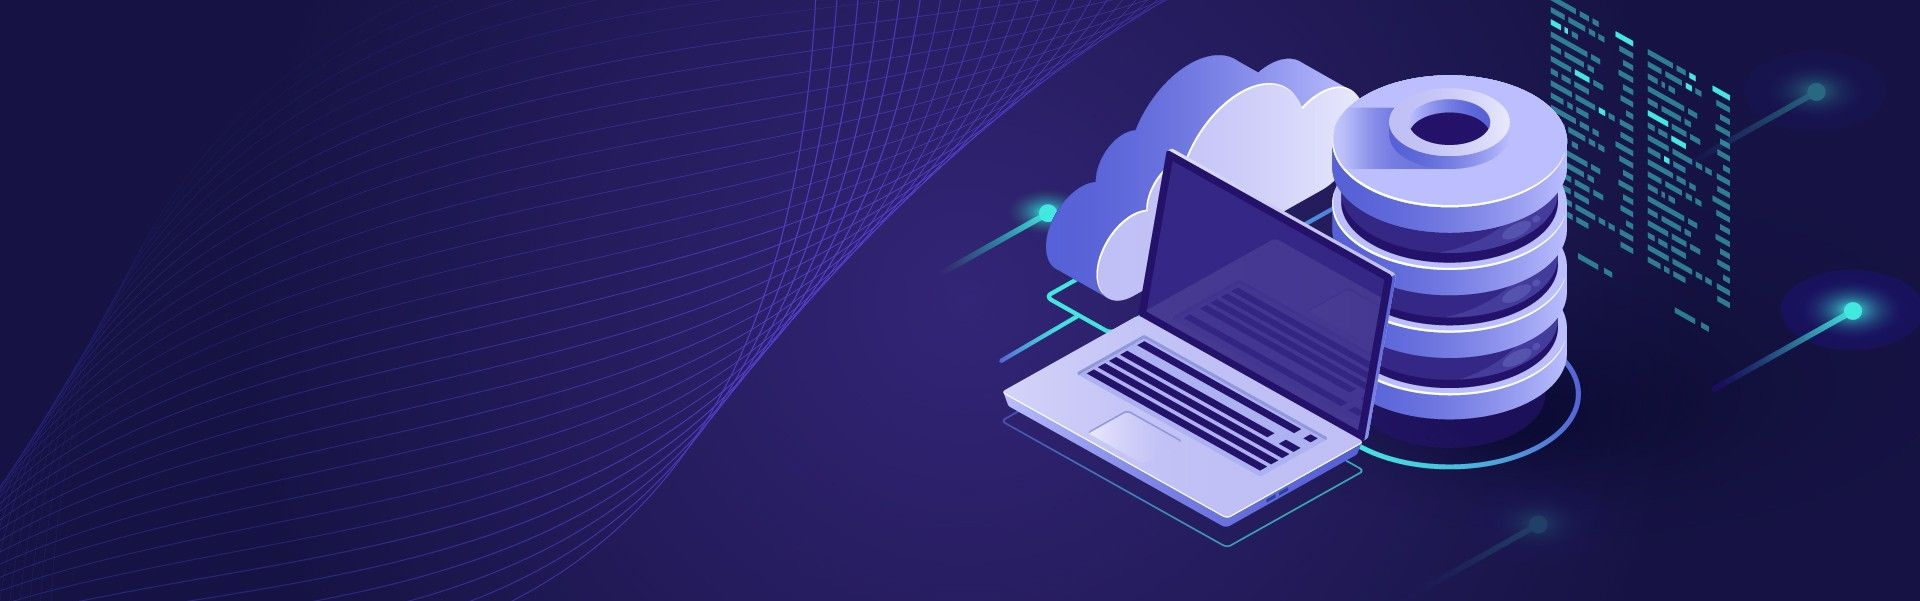 What Are the Latest Web Development Trends of 2020 and Beyond?